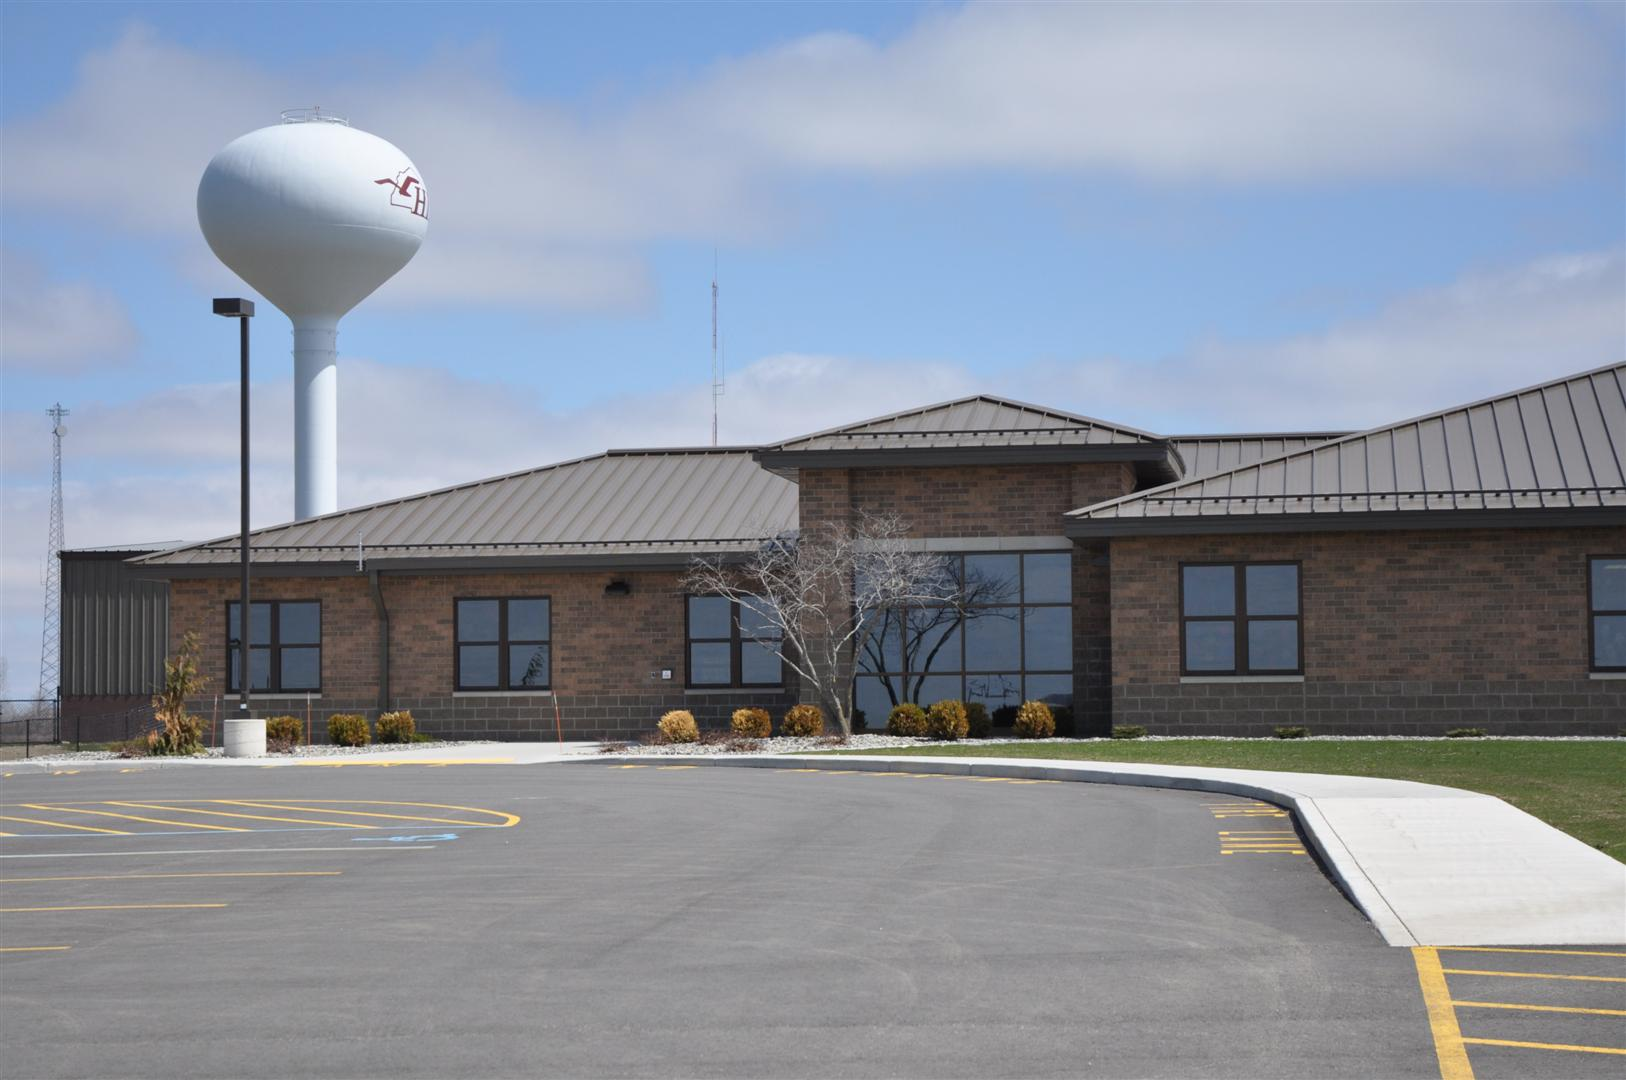 Picture of Huron Learning Center Building